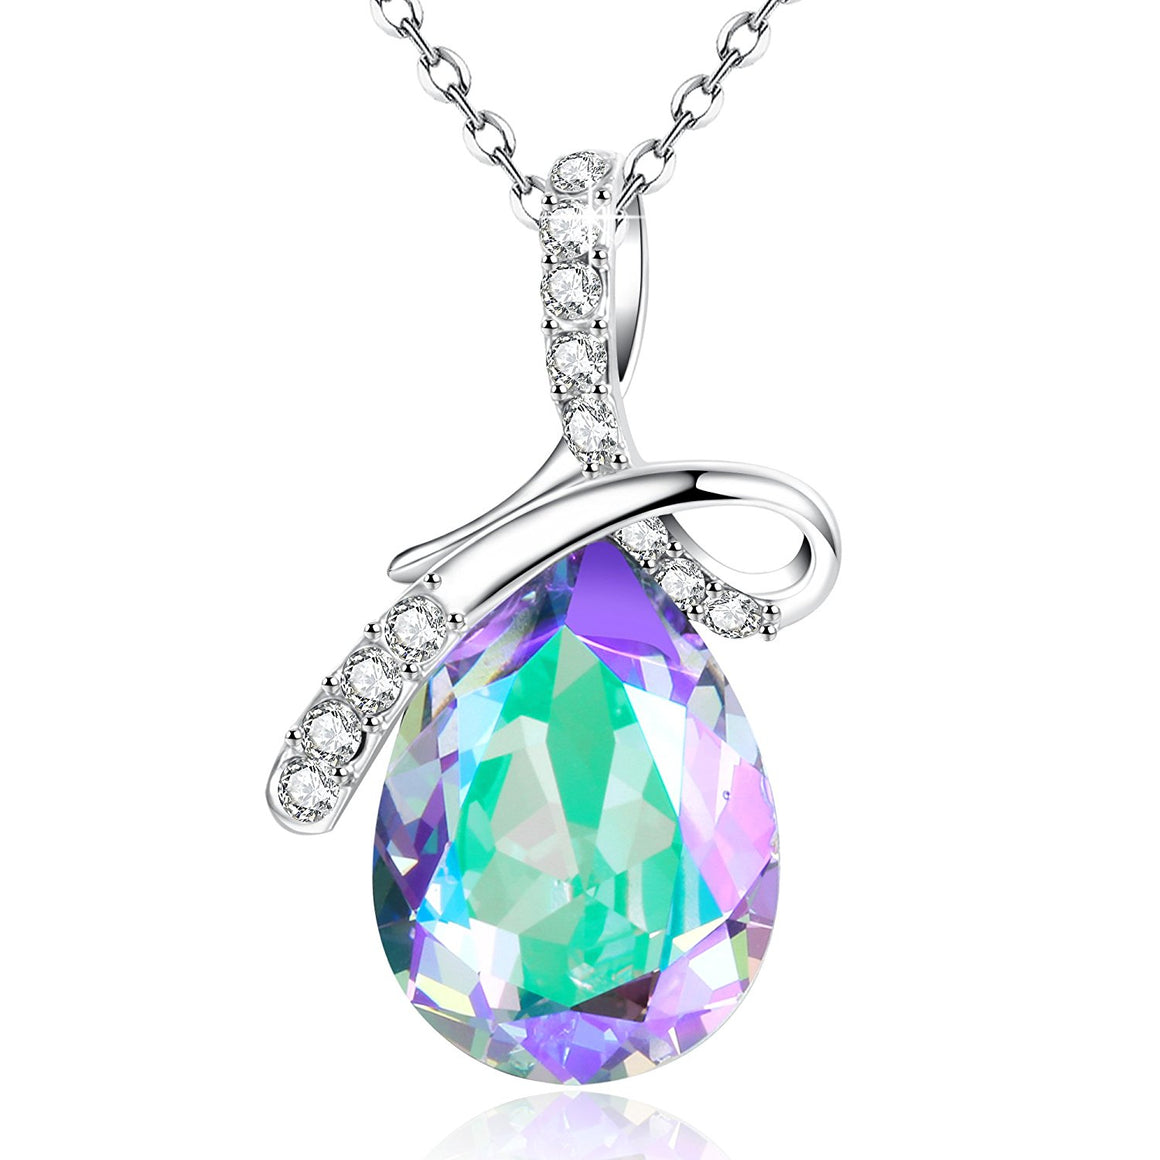 """ Crystal Lake"" Purple Pendant Necklace Teardrop Shaped Jewelry Gift,Made with Swarovski CrystaI"